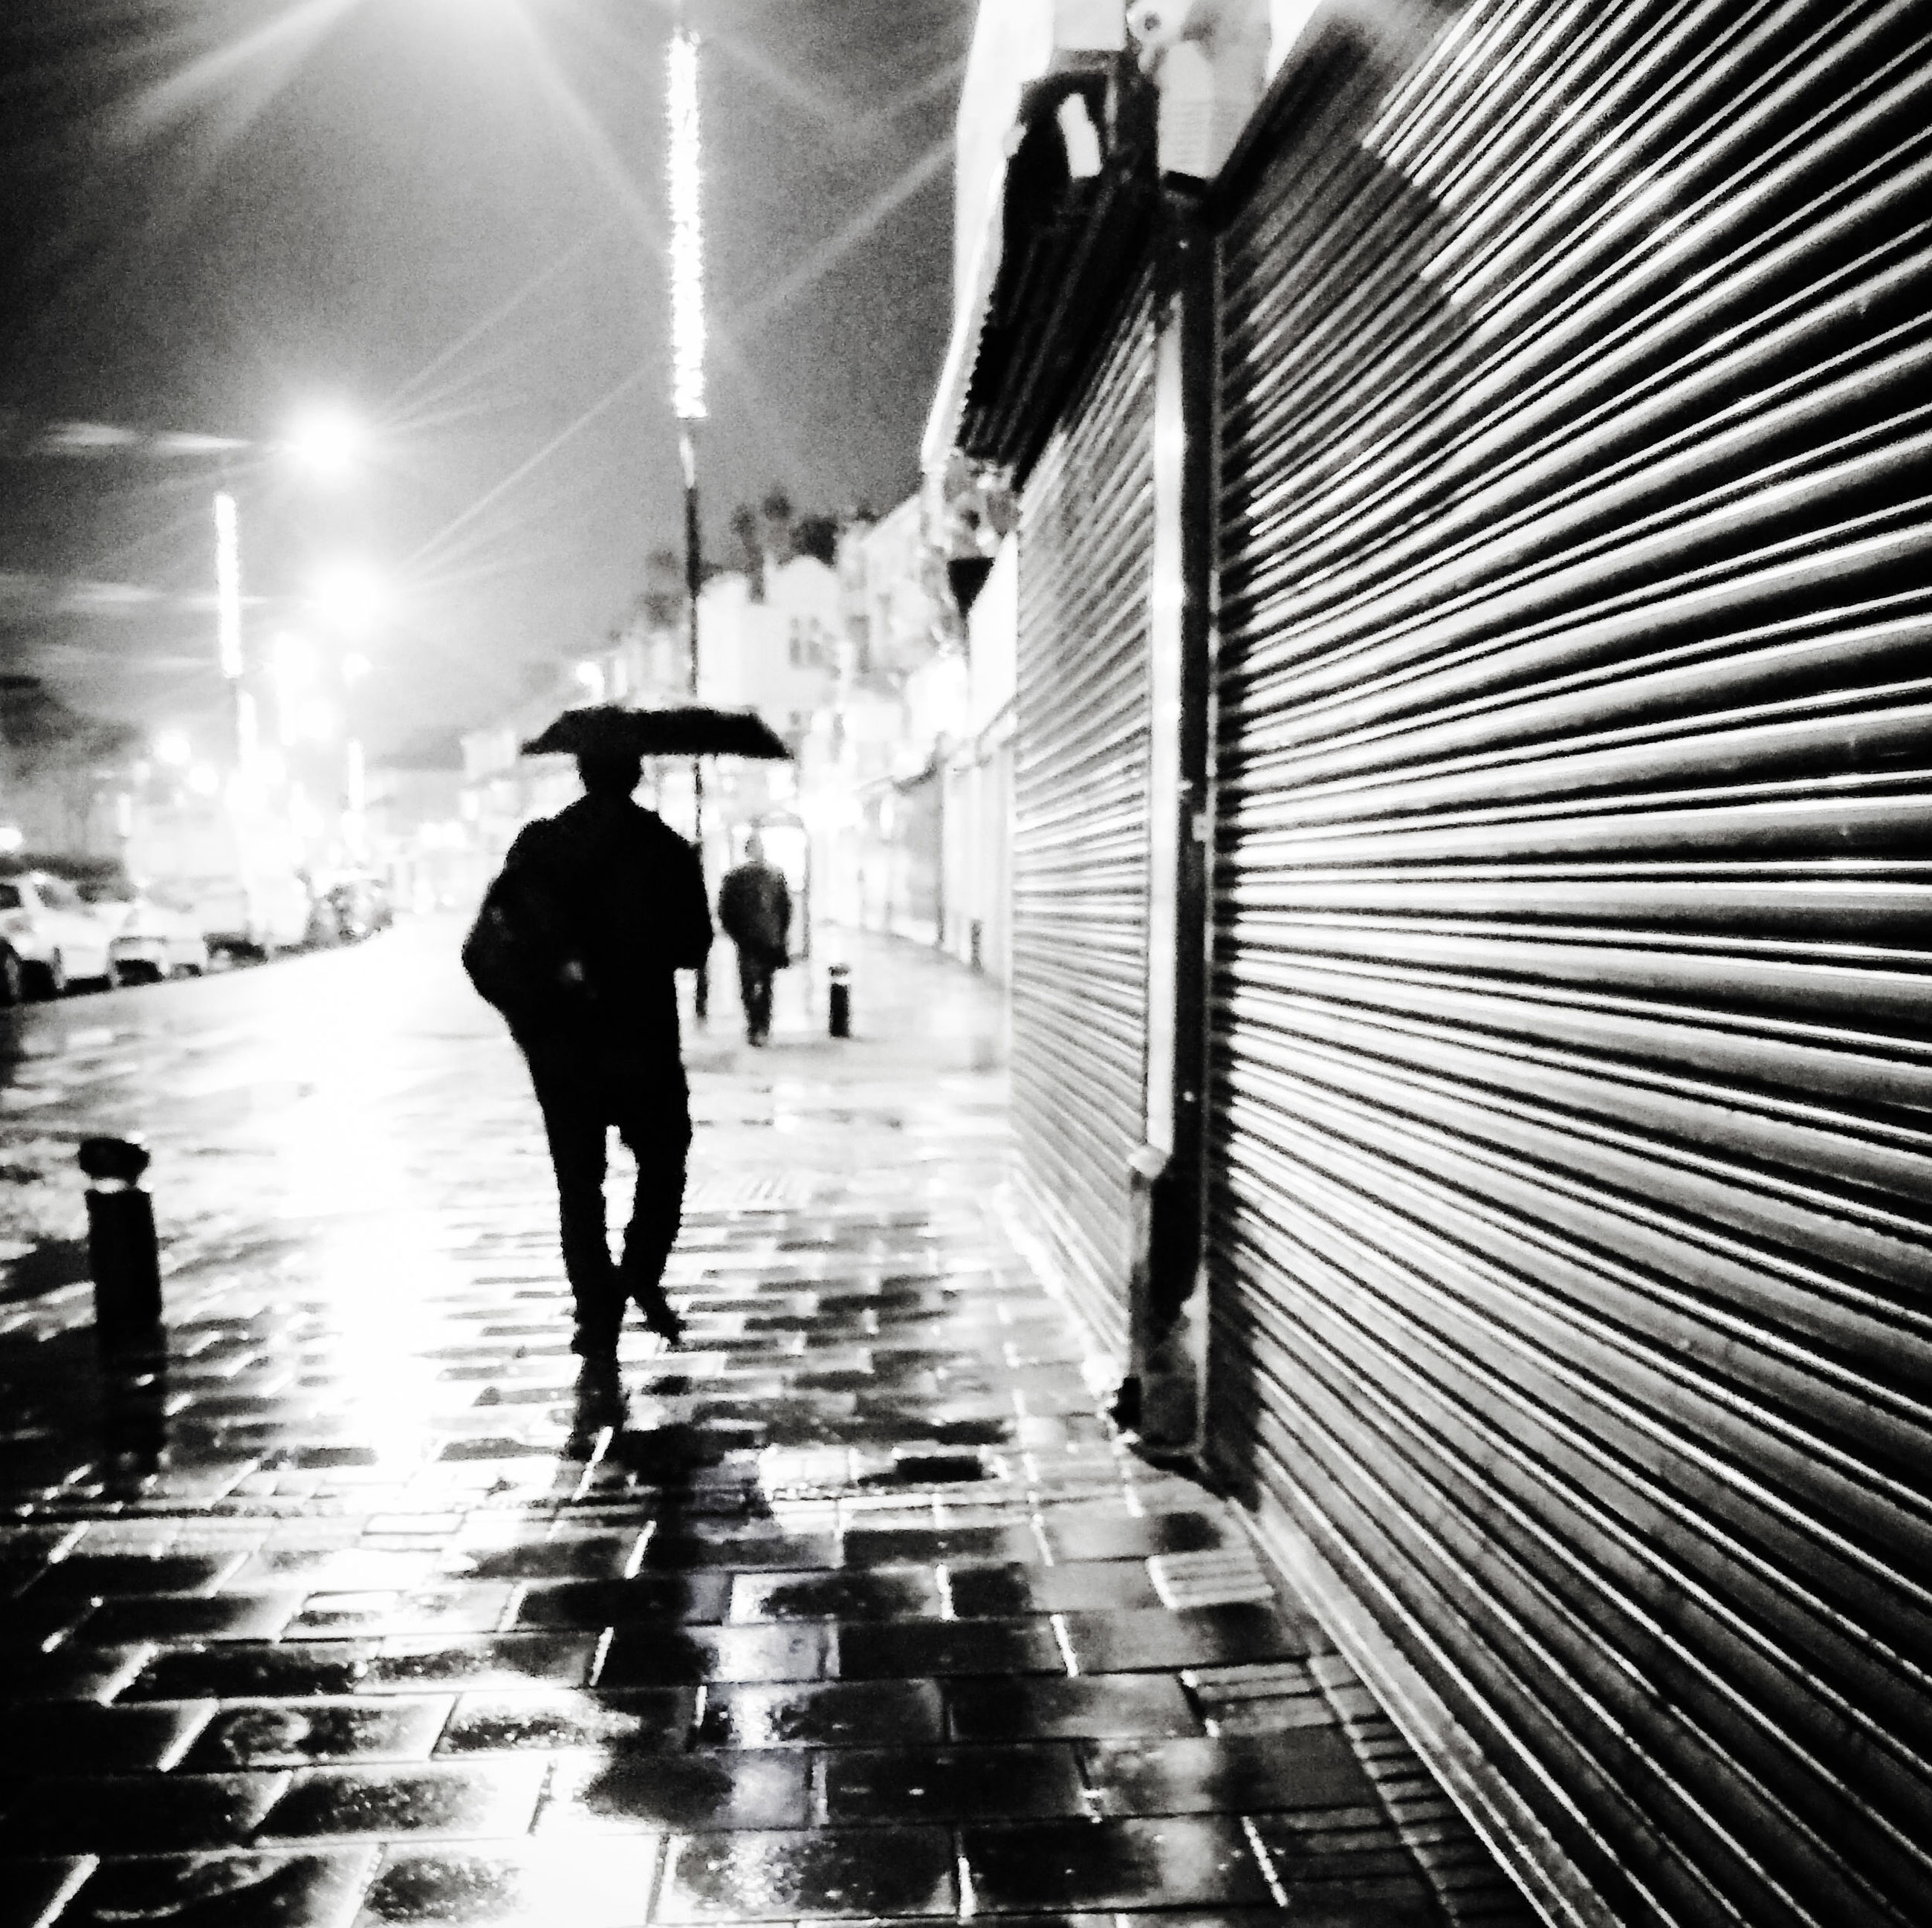 walking, full length, rear view, men, lifestyles, the way forward, person, built structure, architecture, leisure activity, street, city life, umbrella, city, diminishing perspective, building exterior, illuminated